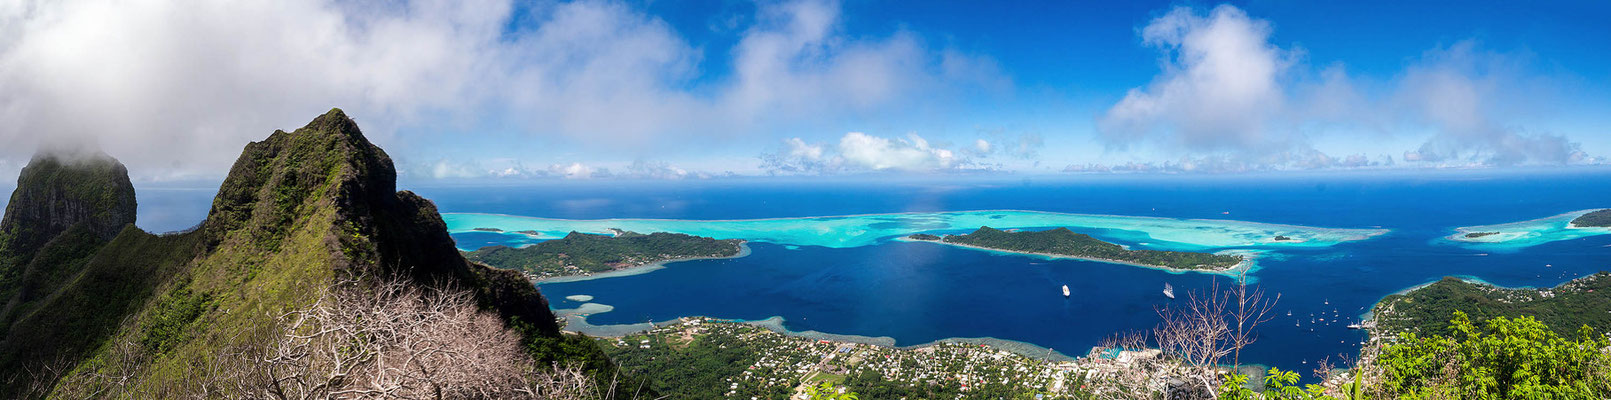 Panoramic view of Bora Bora from Mount Ohue (619masl)  [French Polynesia, 2014]